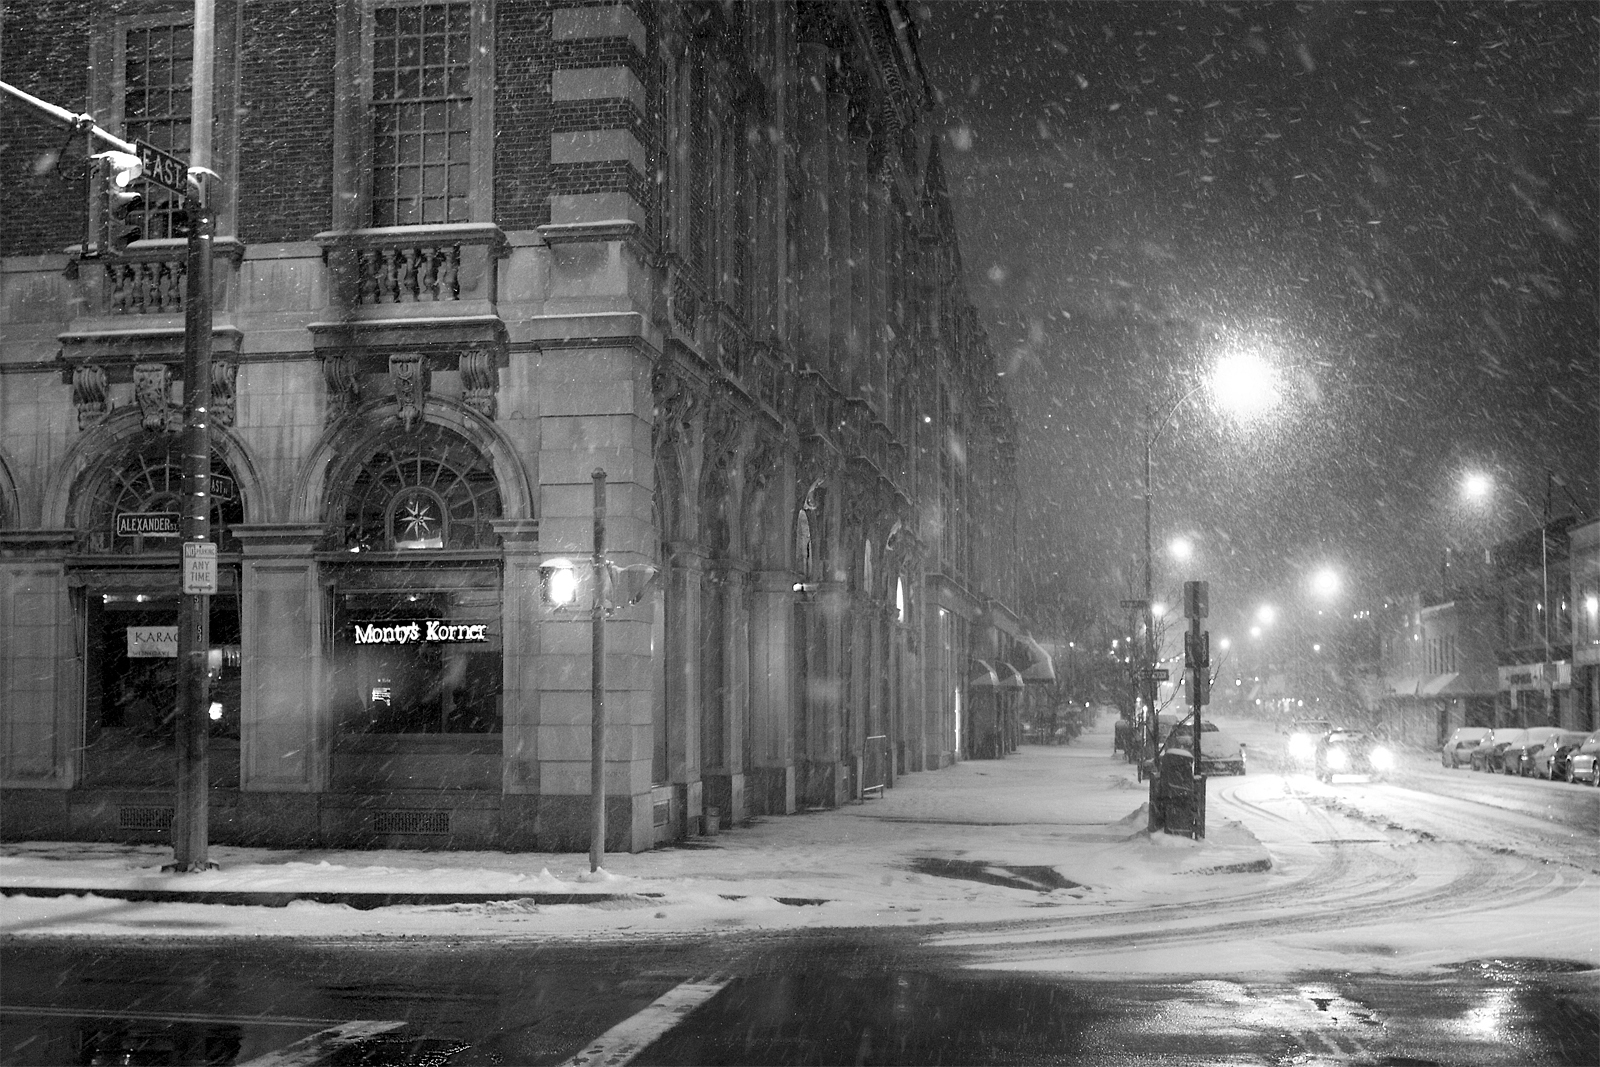 snowy calle at night